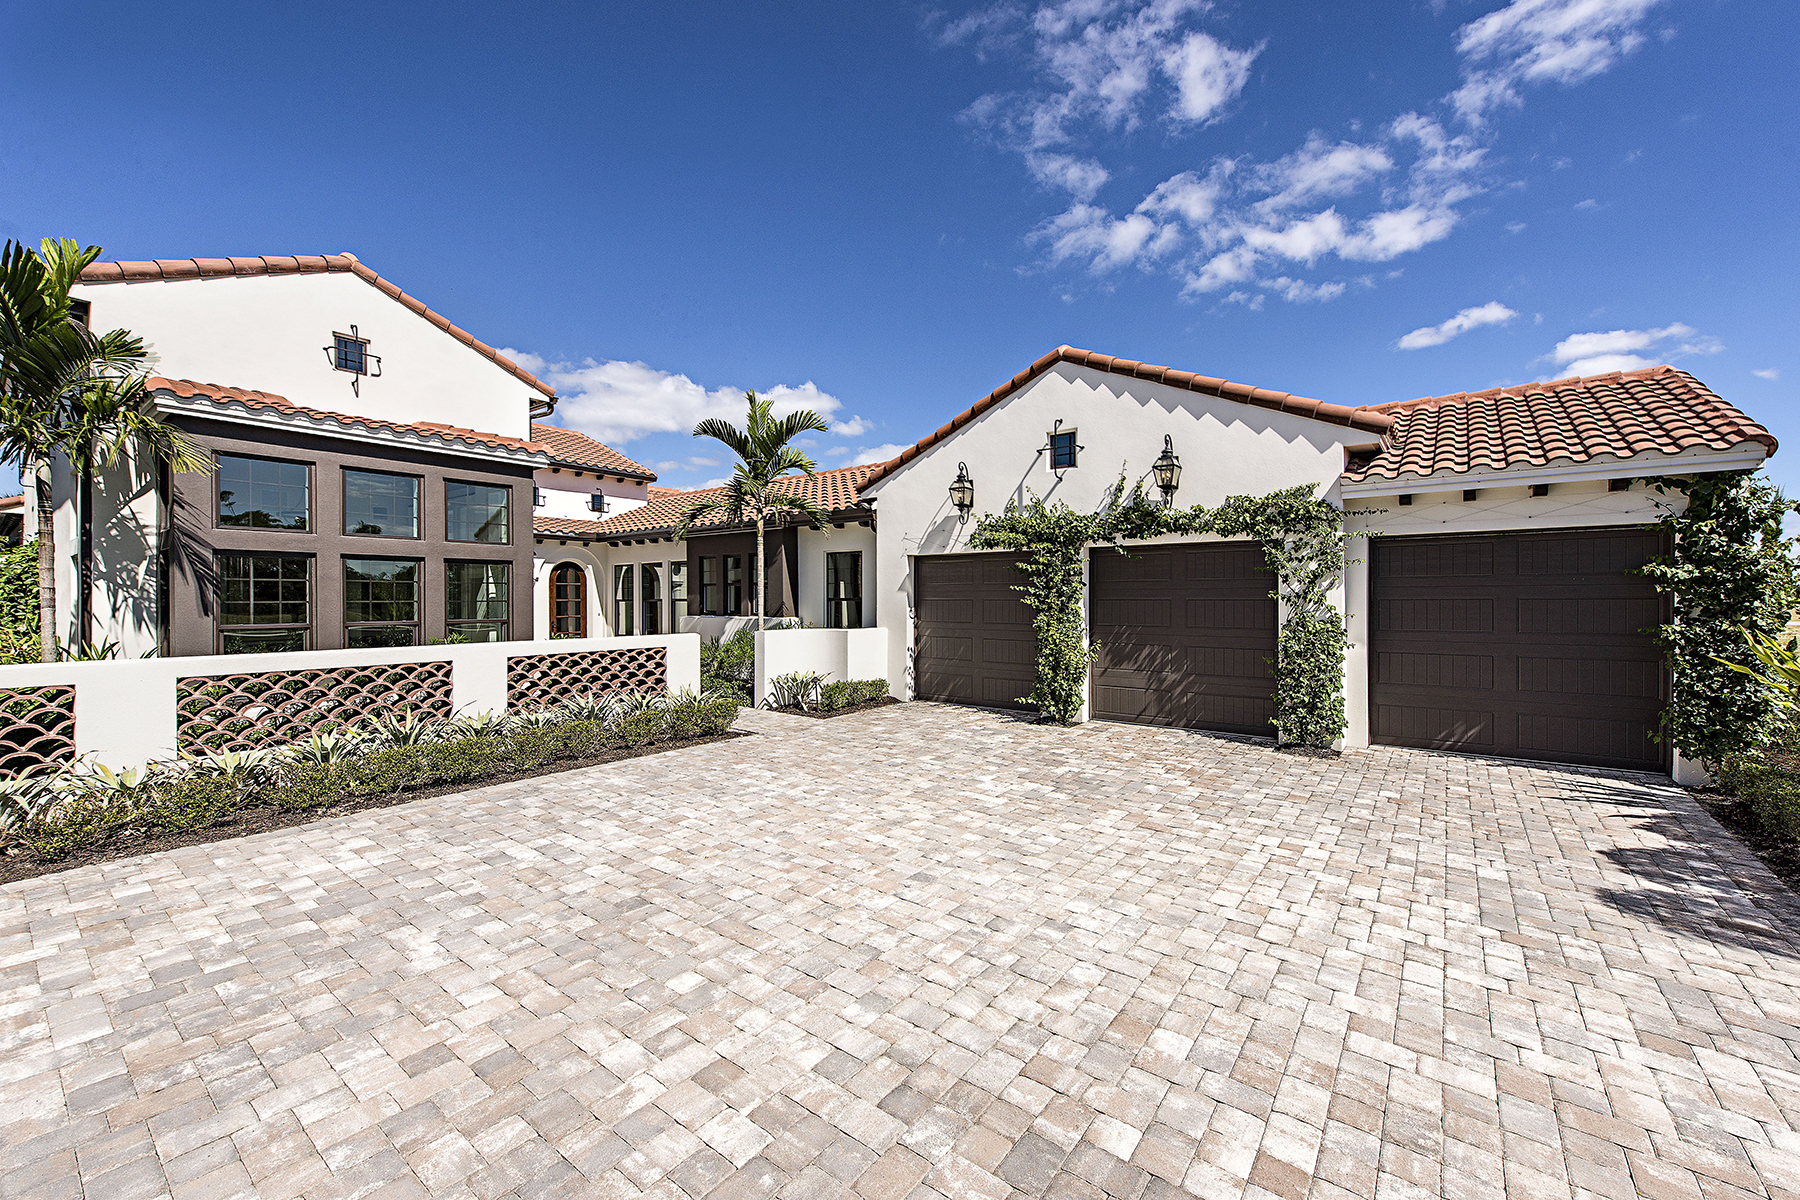 Single Family Home for Sale at FIDDLERS' CREEK - MARSH COVE 3255 Tavolara Ln, Naples, Florida 34114 United States